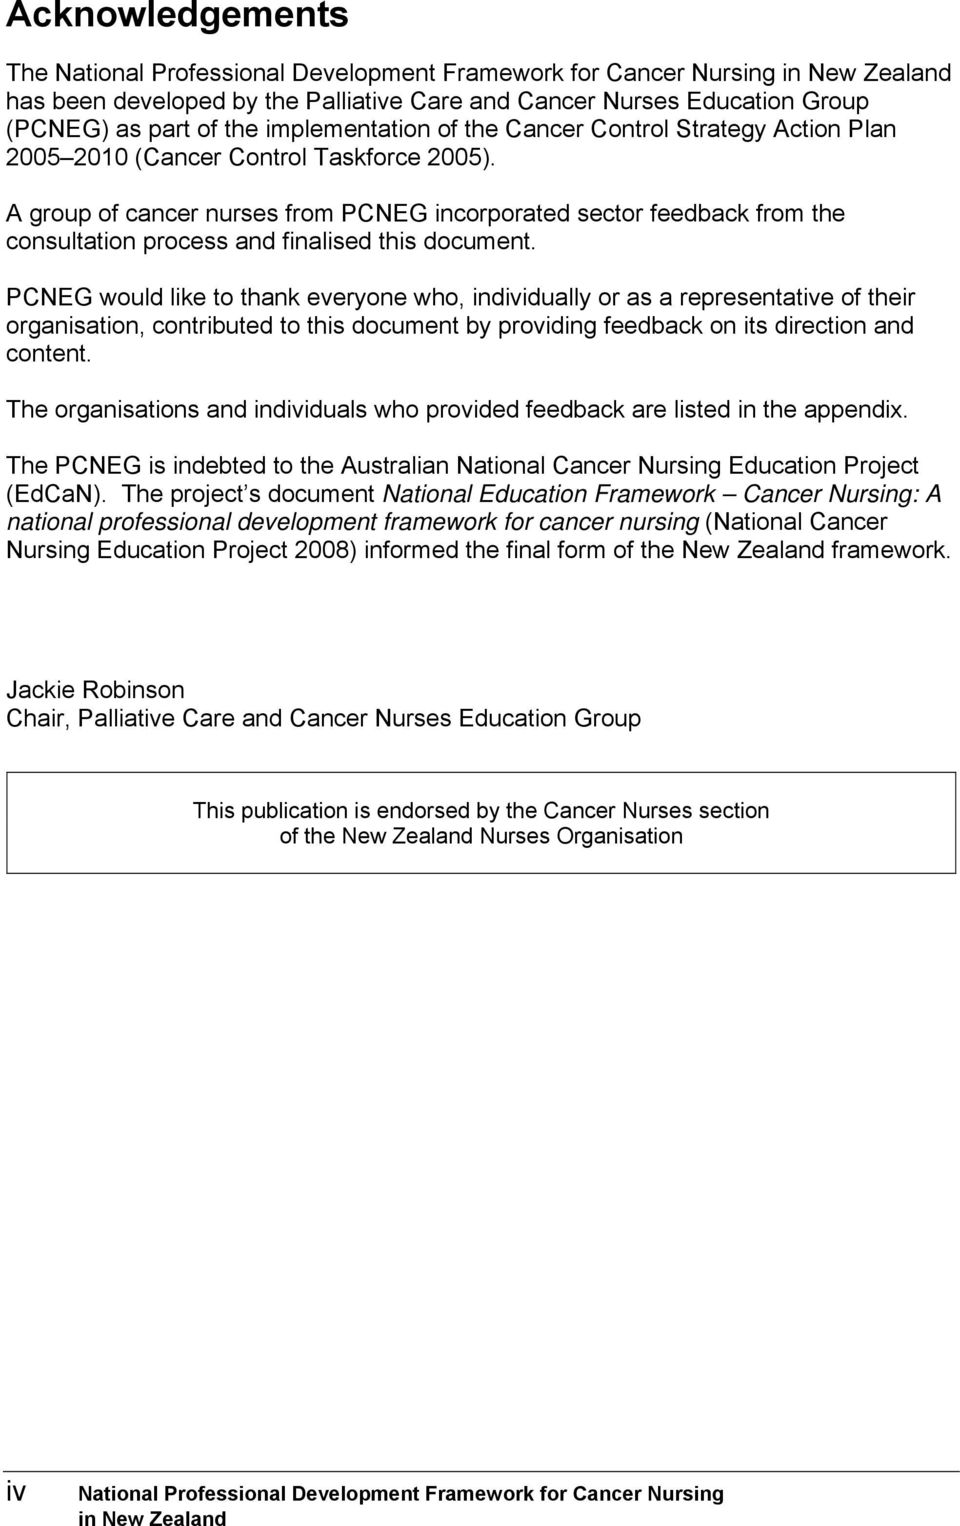 A group of cancer nurses from PCNEG incorporated sector feedback from the consultation process and finalised this document.